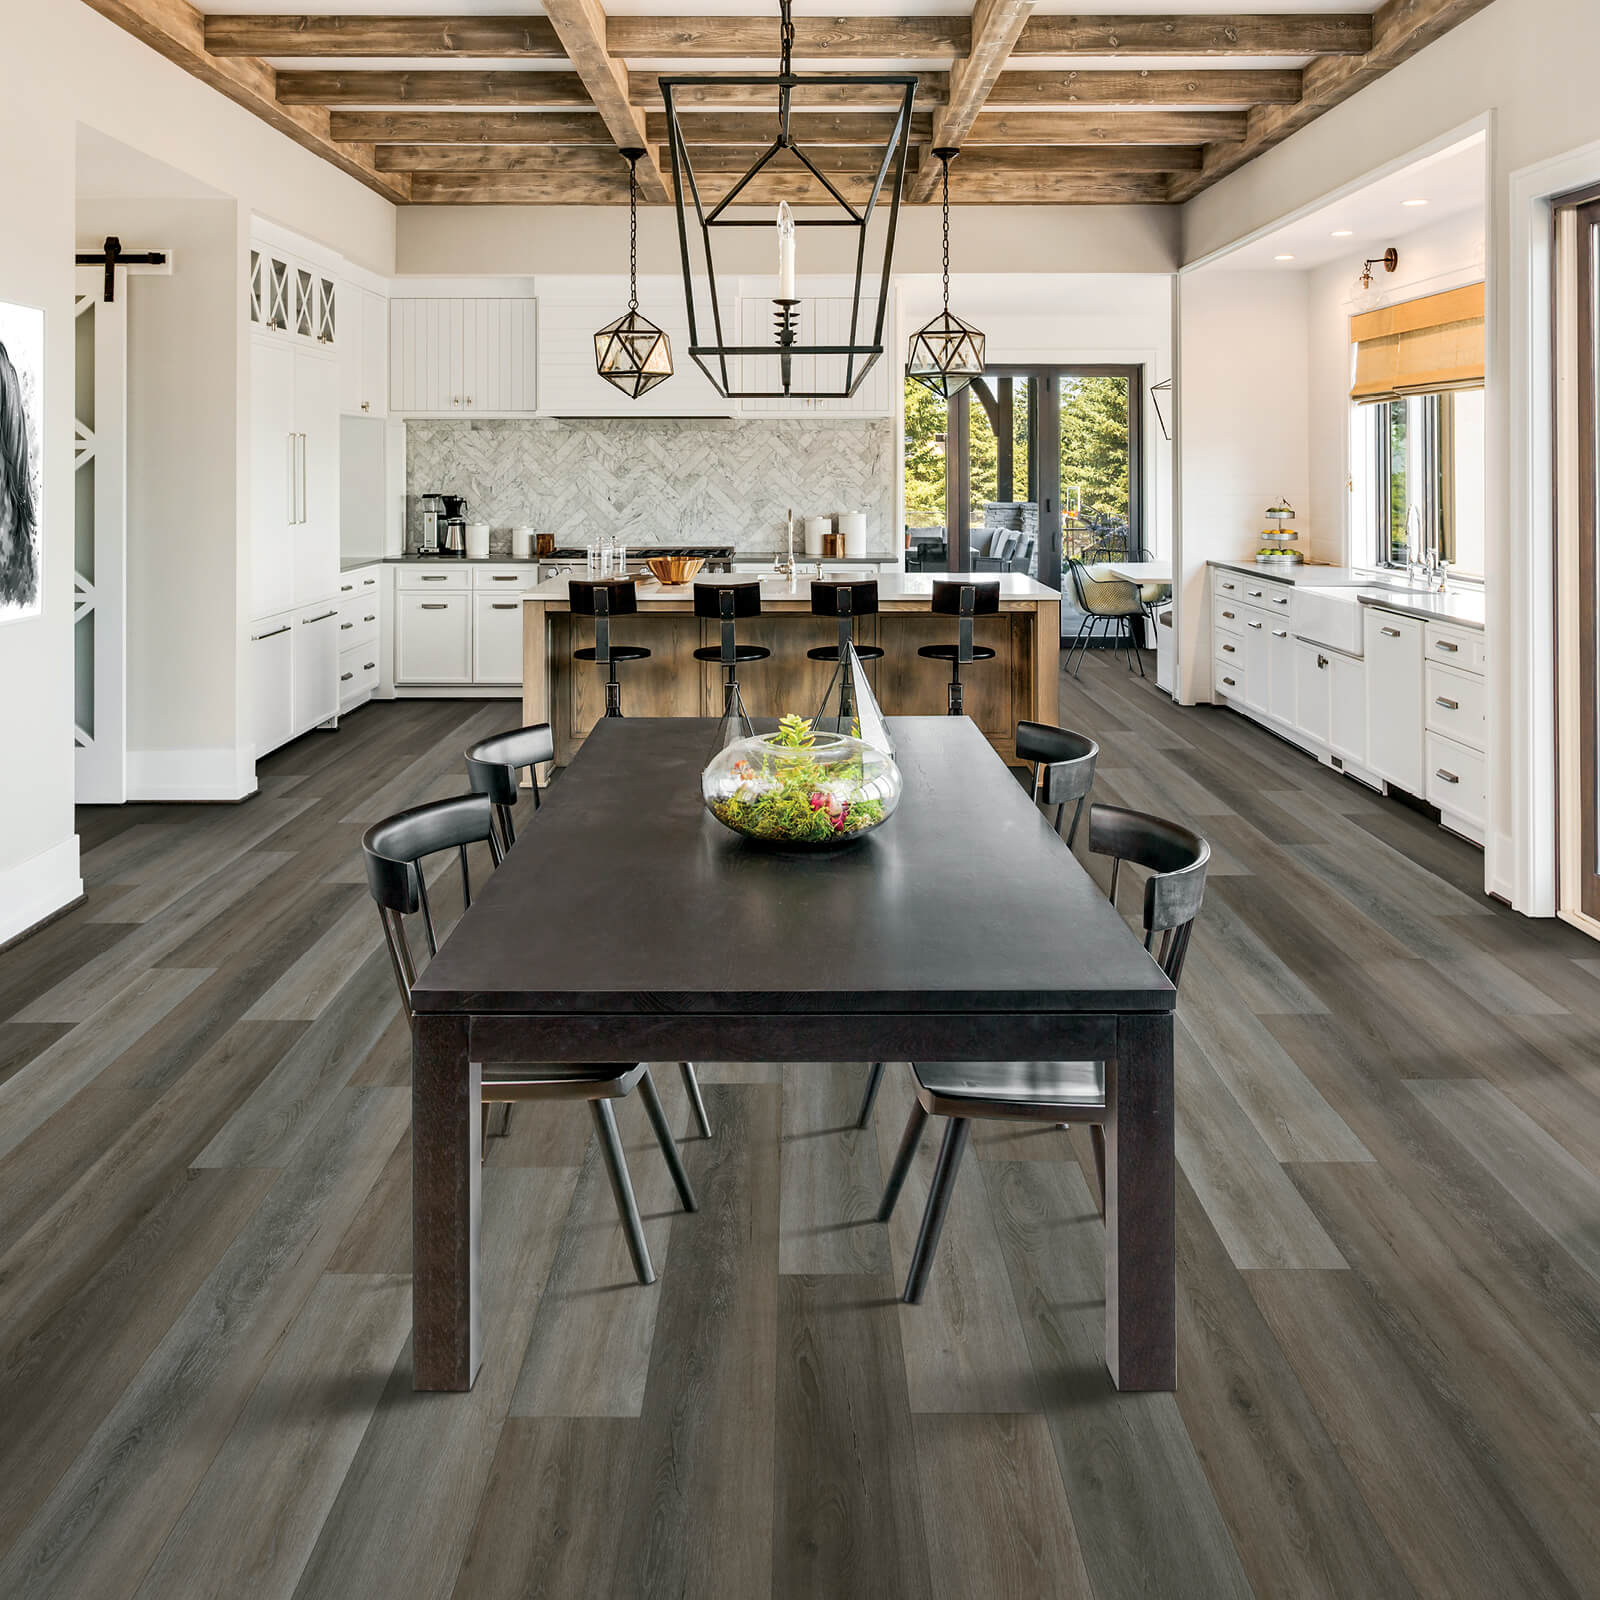 Kitchen interior | Great Floors